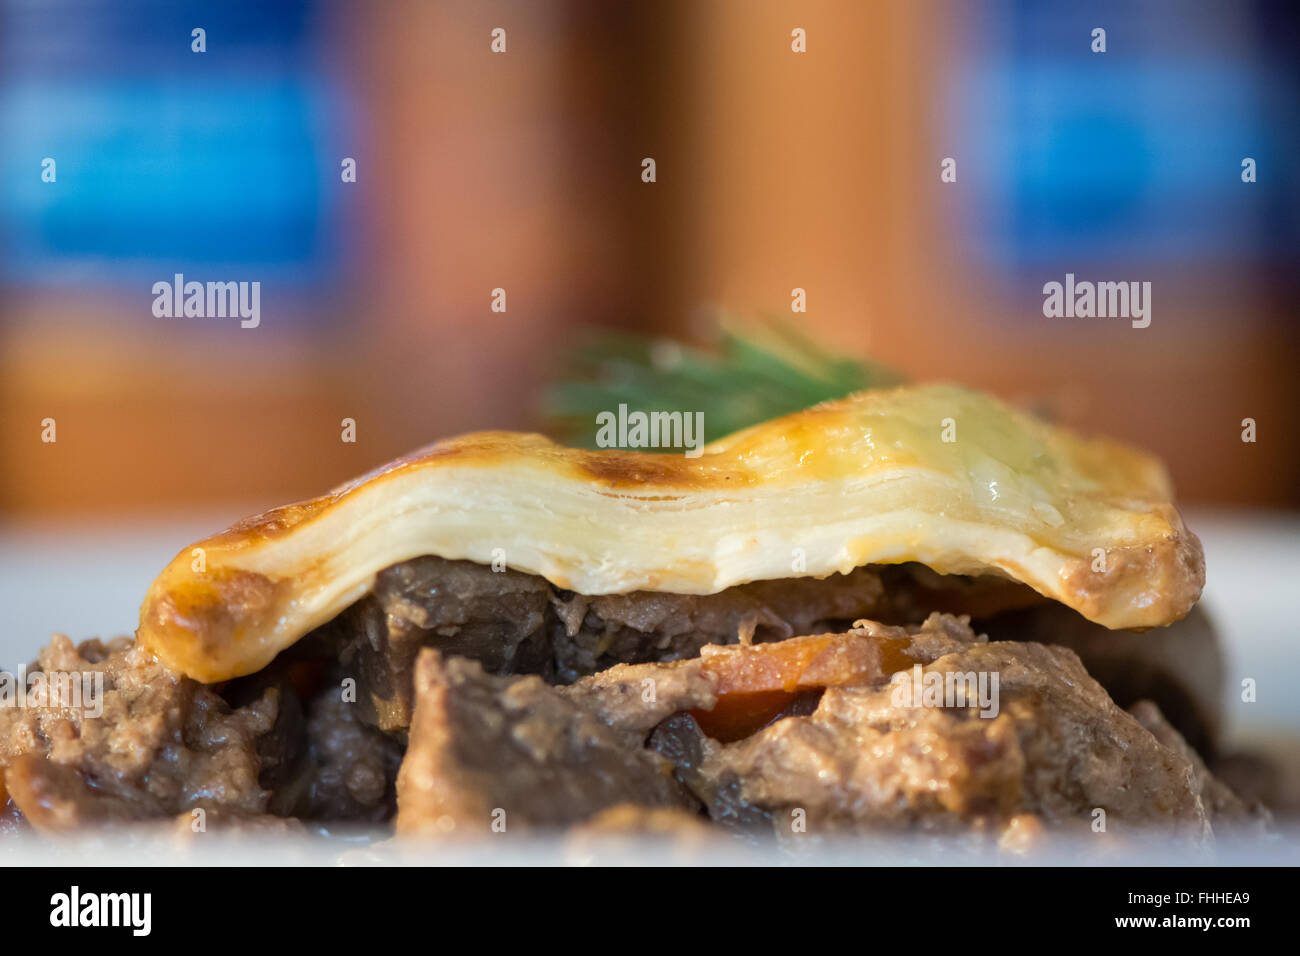 Steak and kidney pie. French restaurant prepared cuisine influenced by a traditional English recipe, presented on Stock Photo